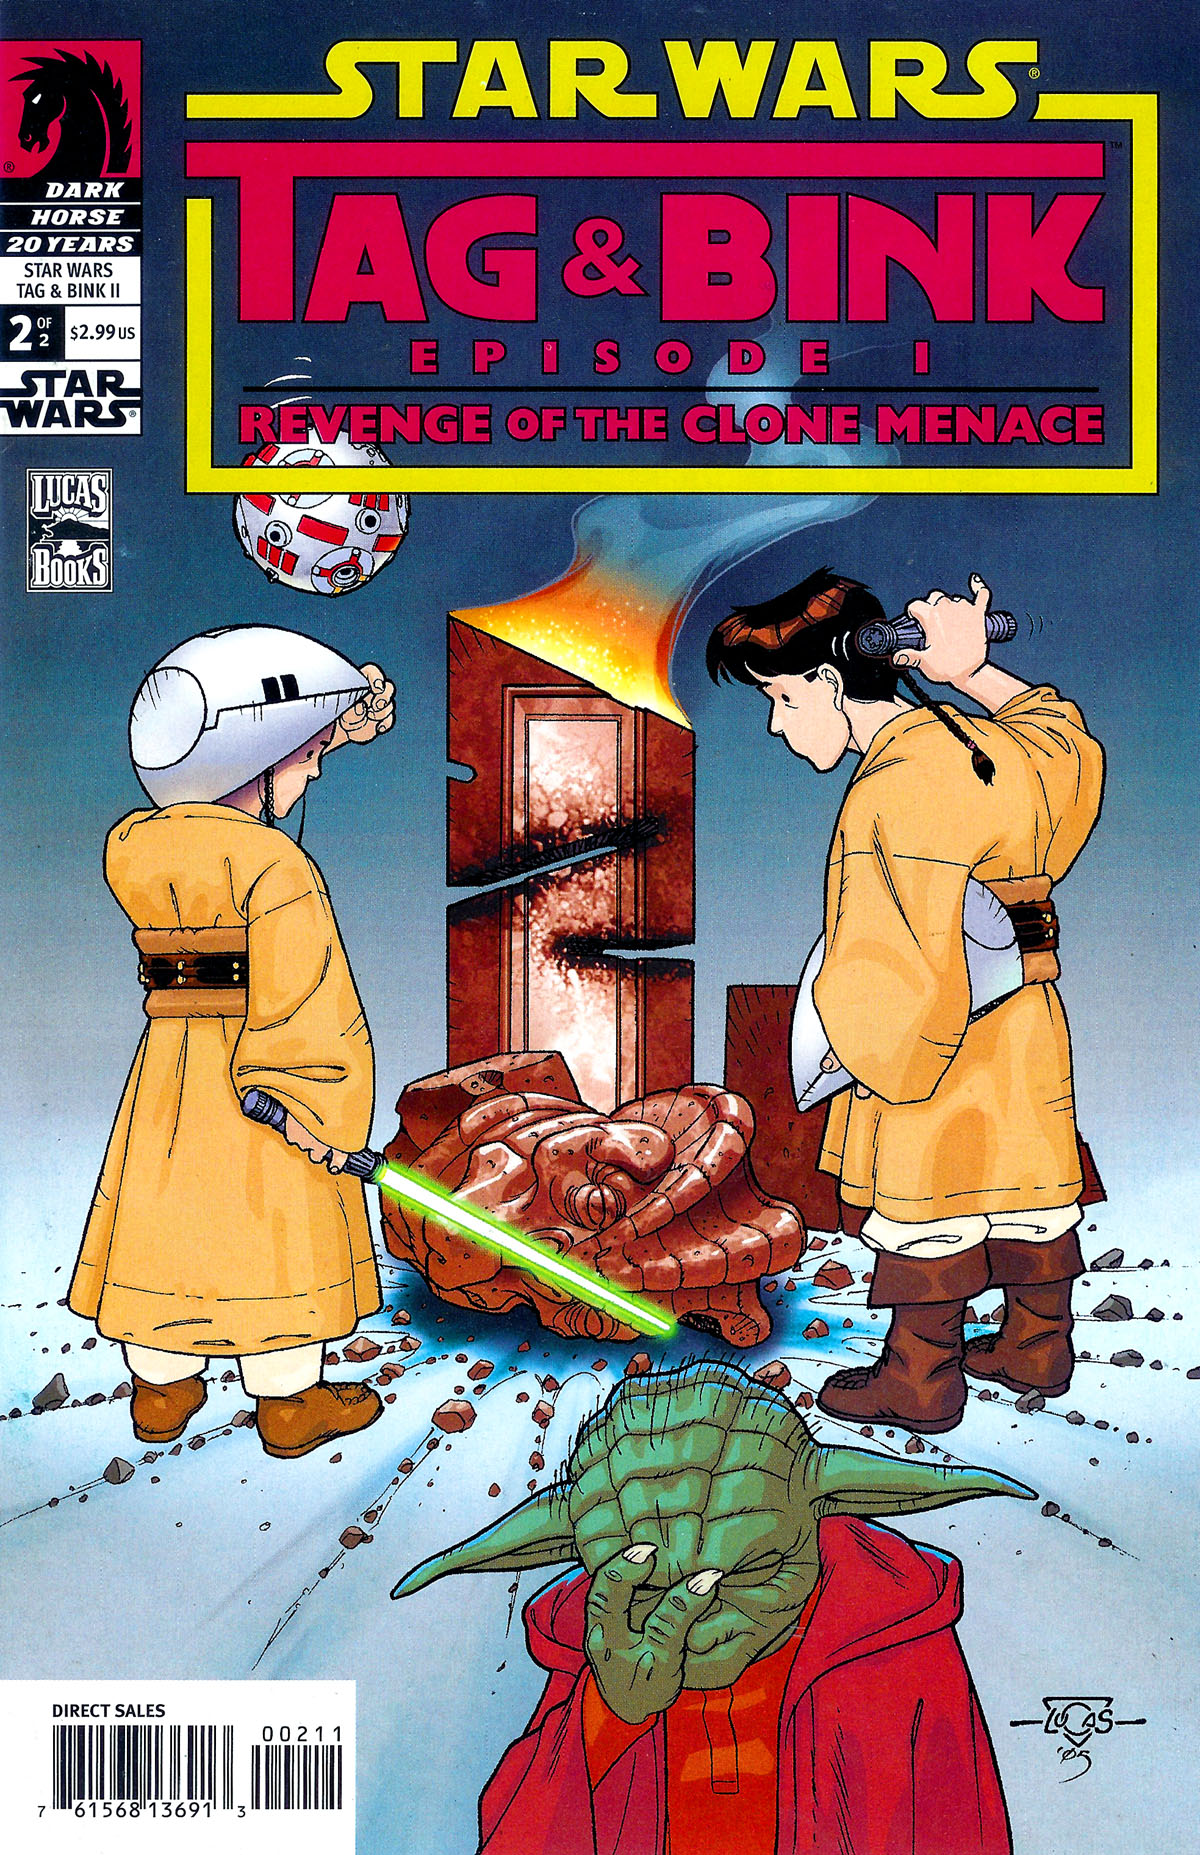 Star Wars Tag and Bink Episode I: Revenge of the Clone Menace